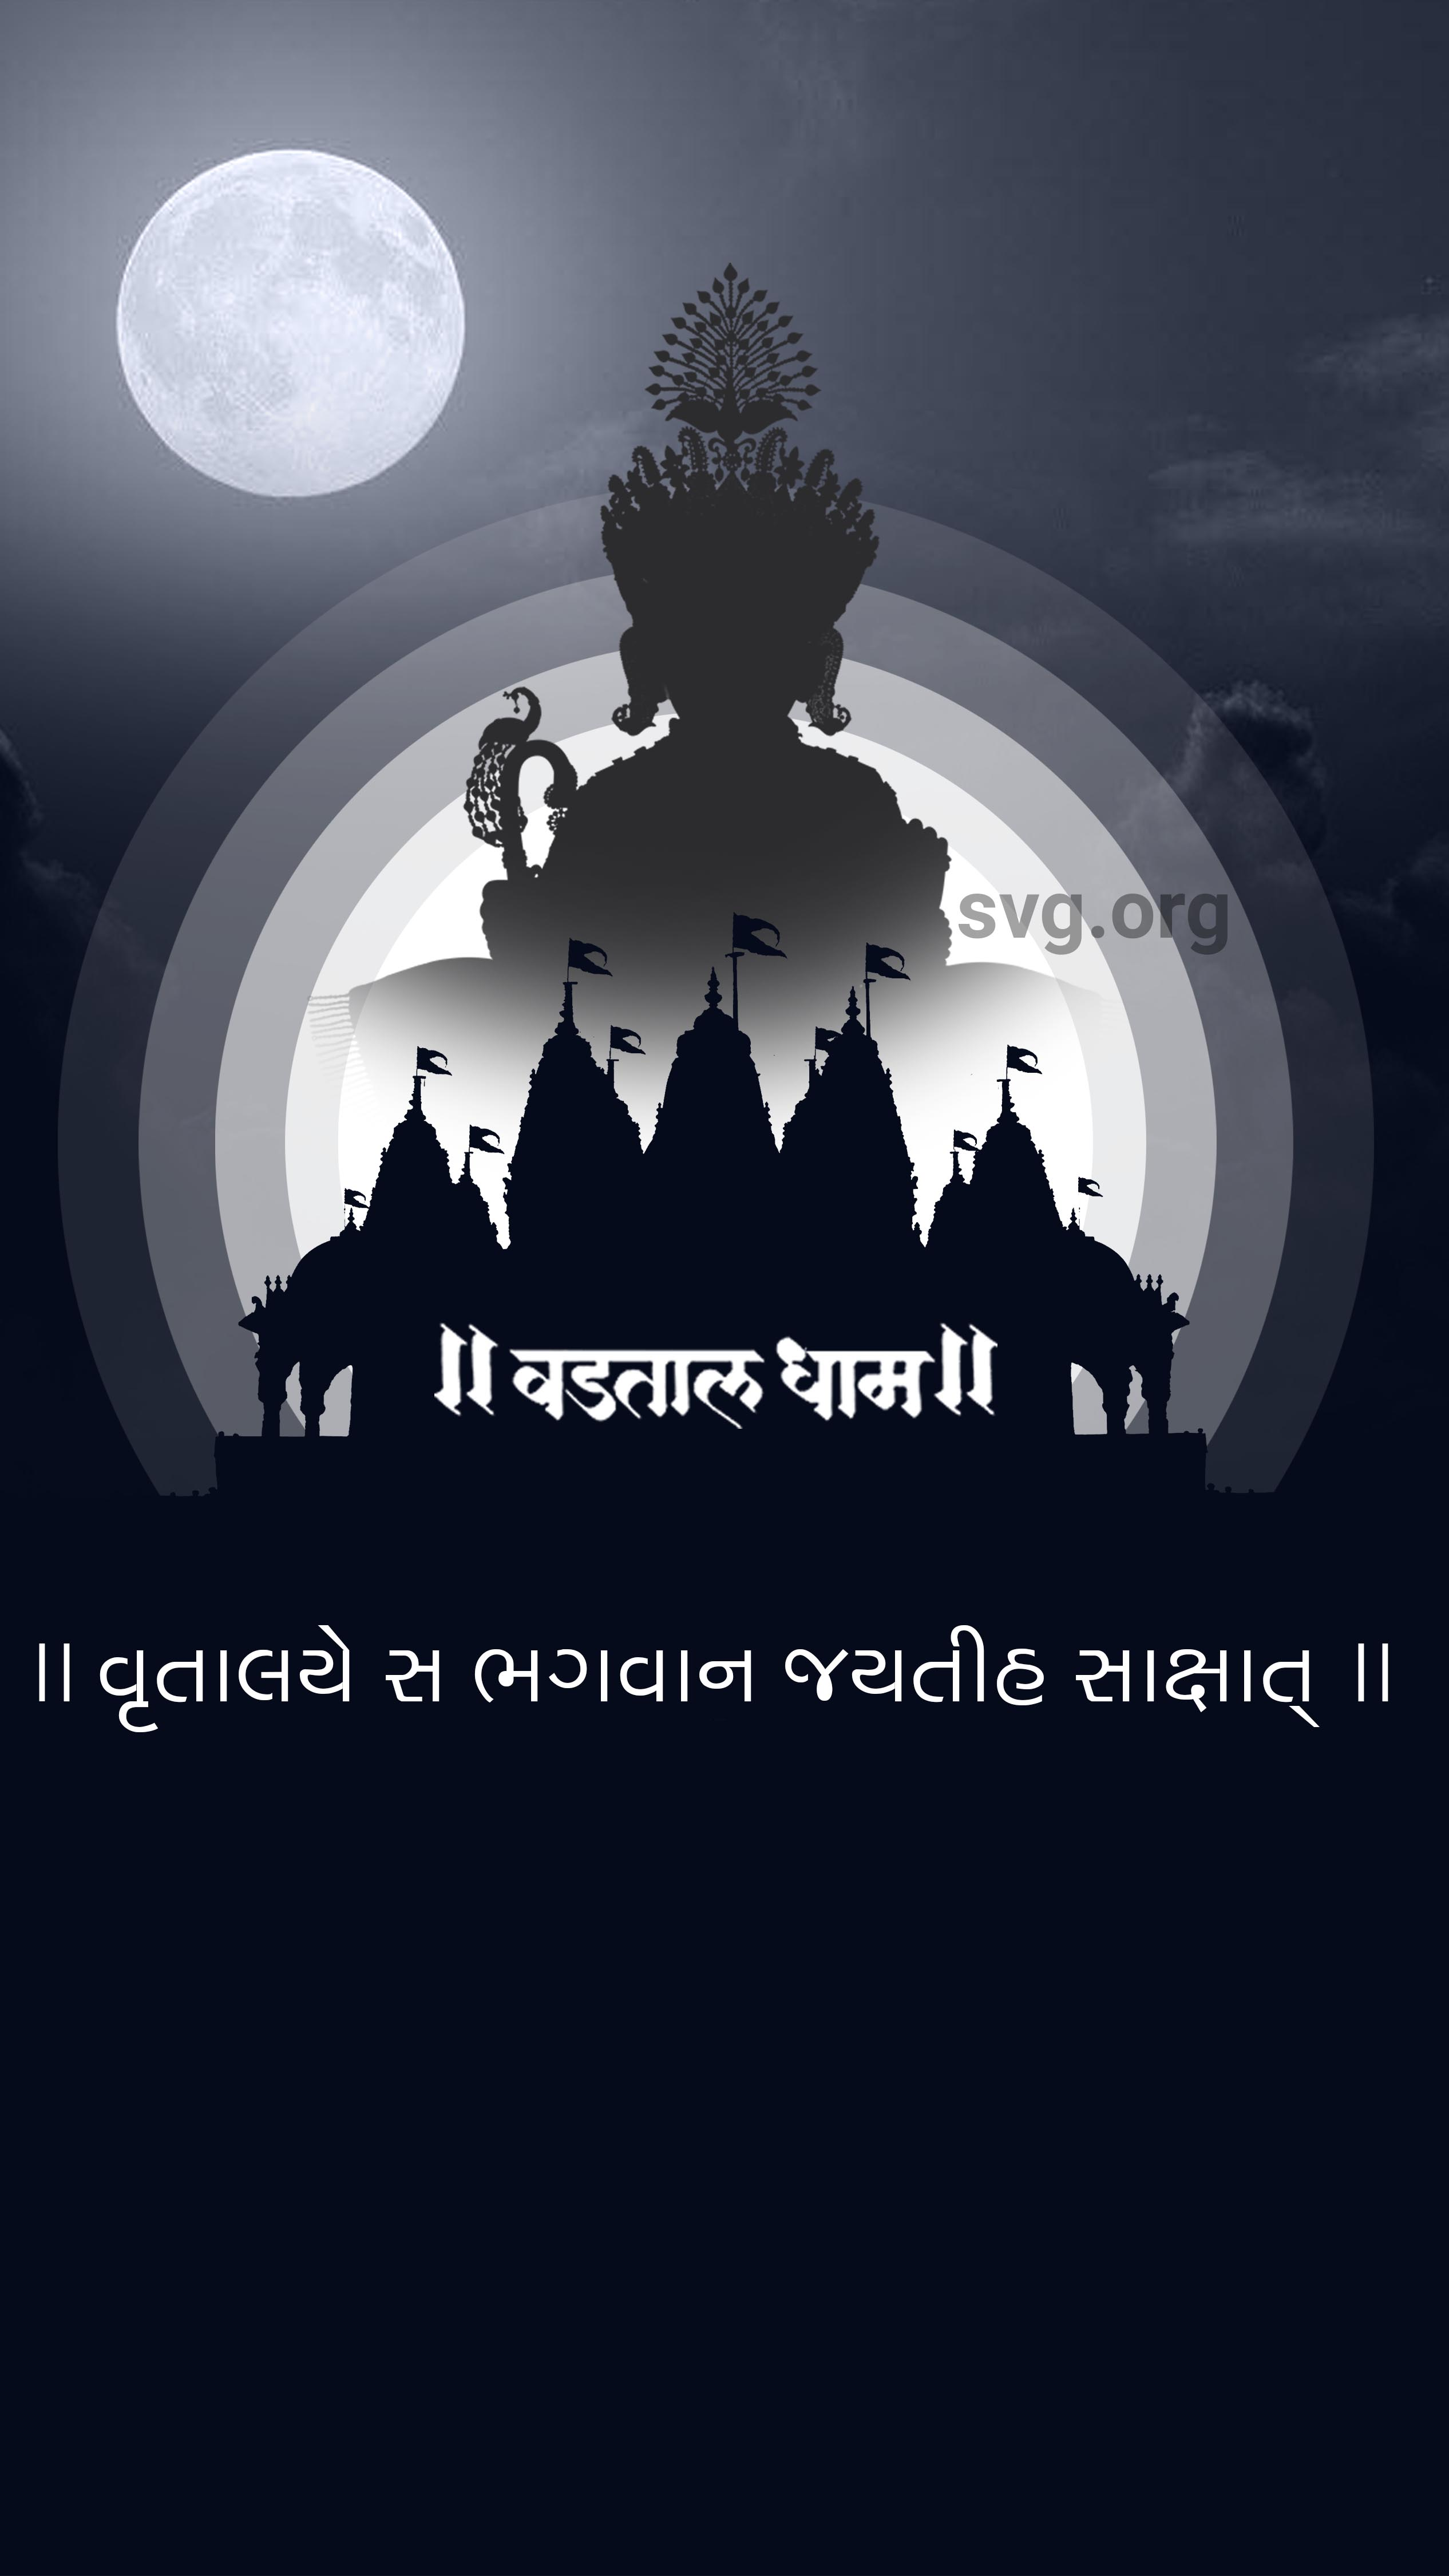 swaminarayan hd wallpaper for mobile